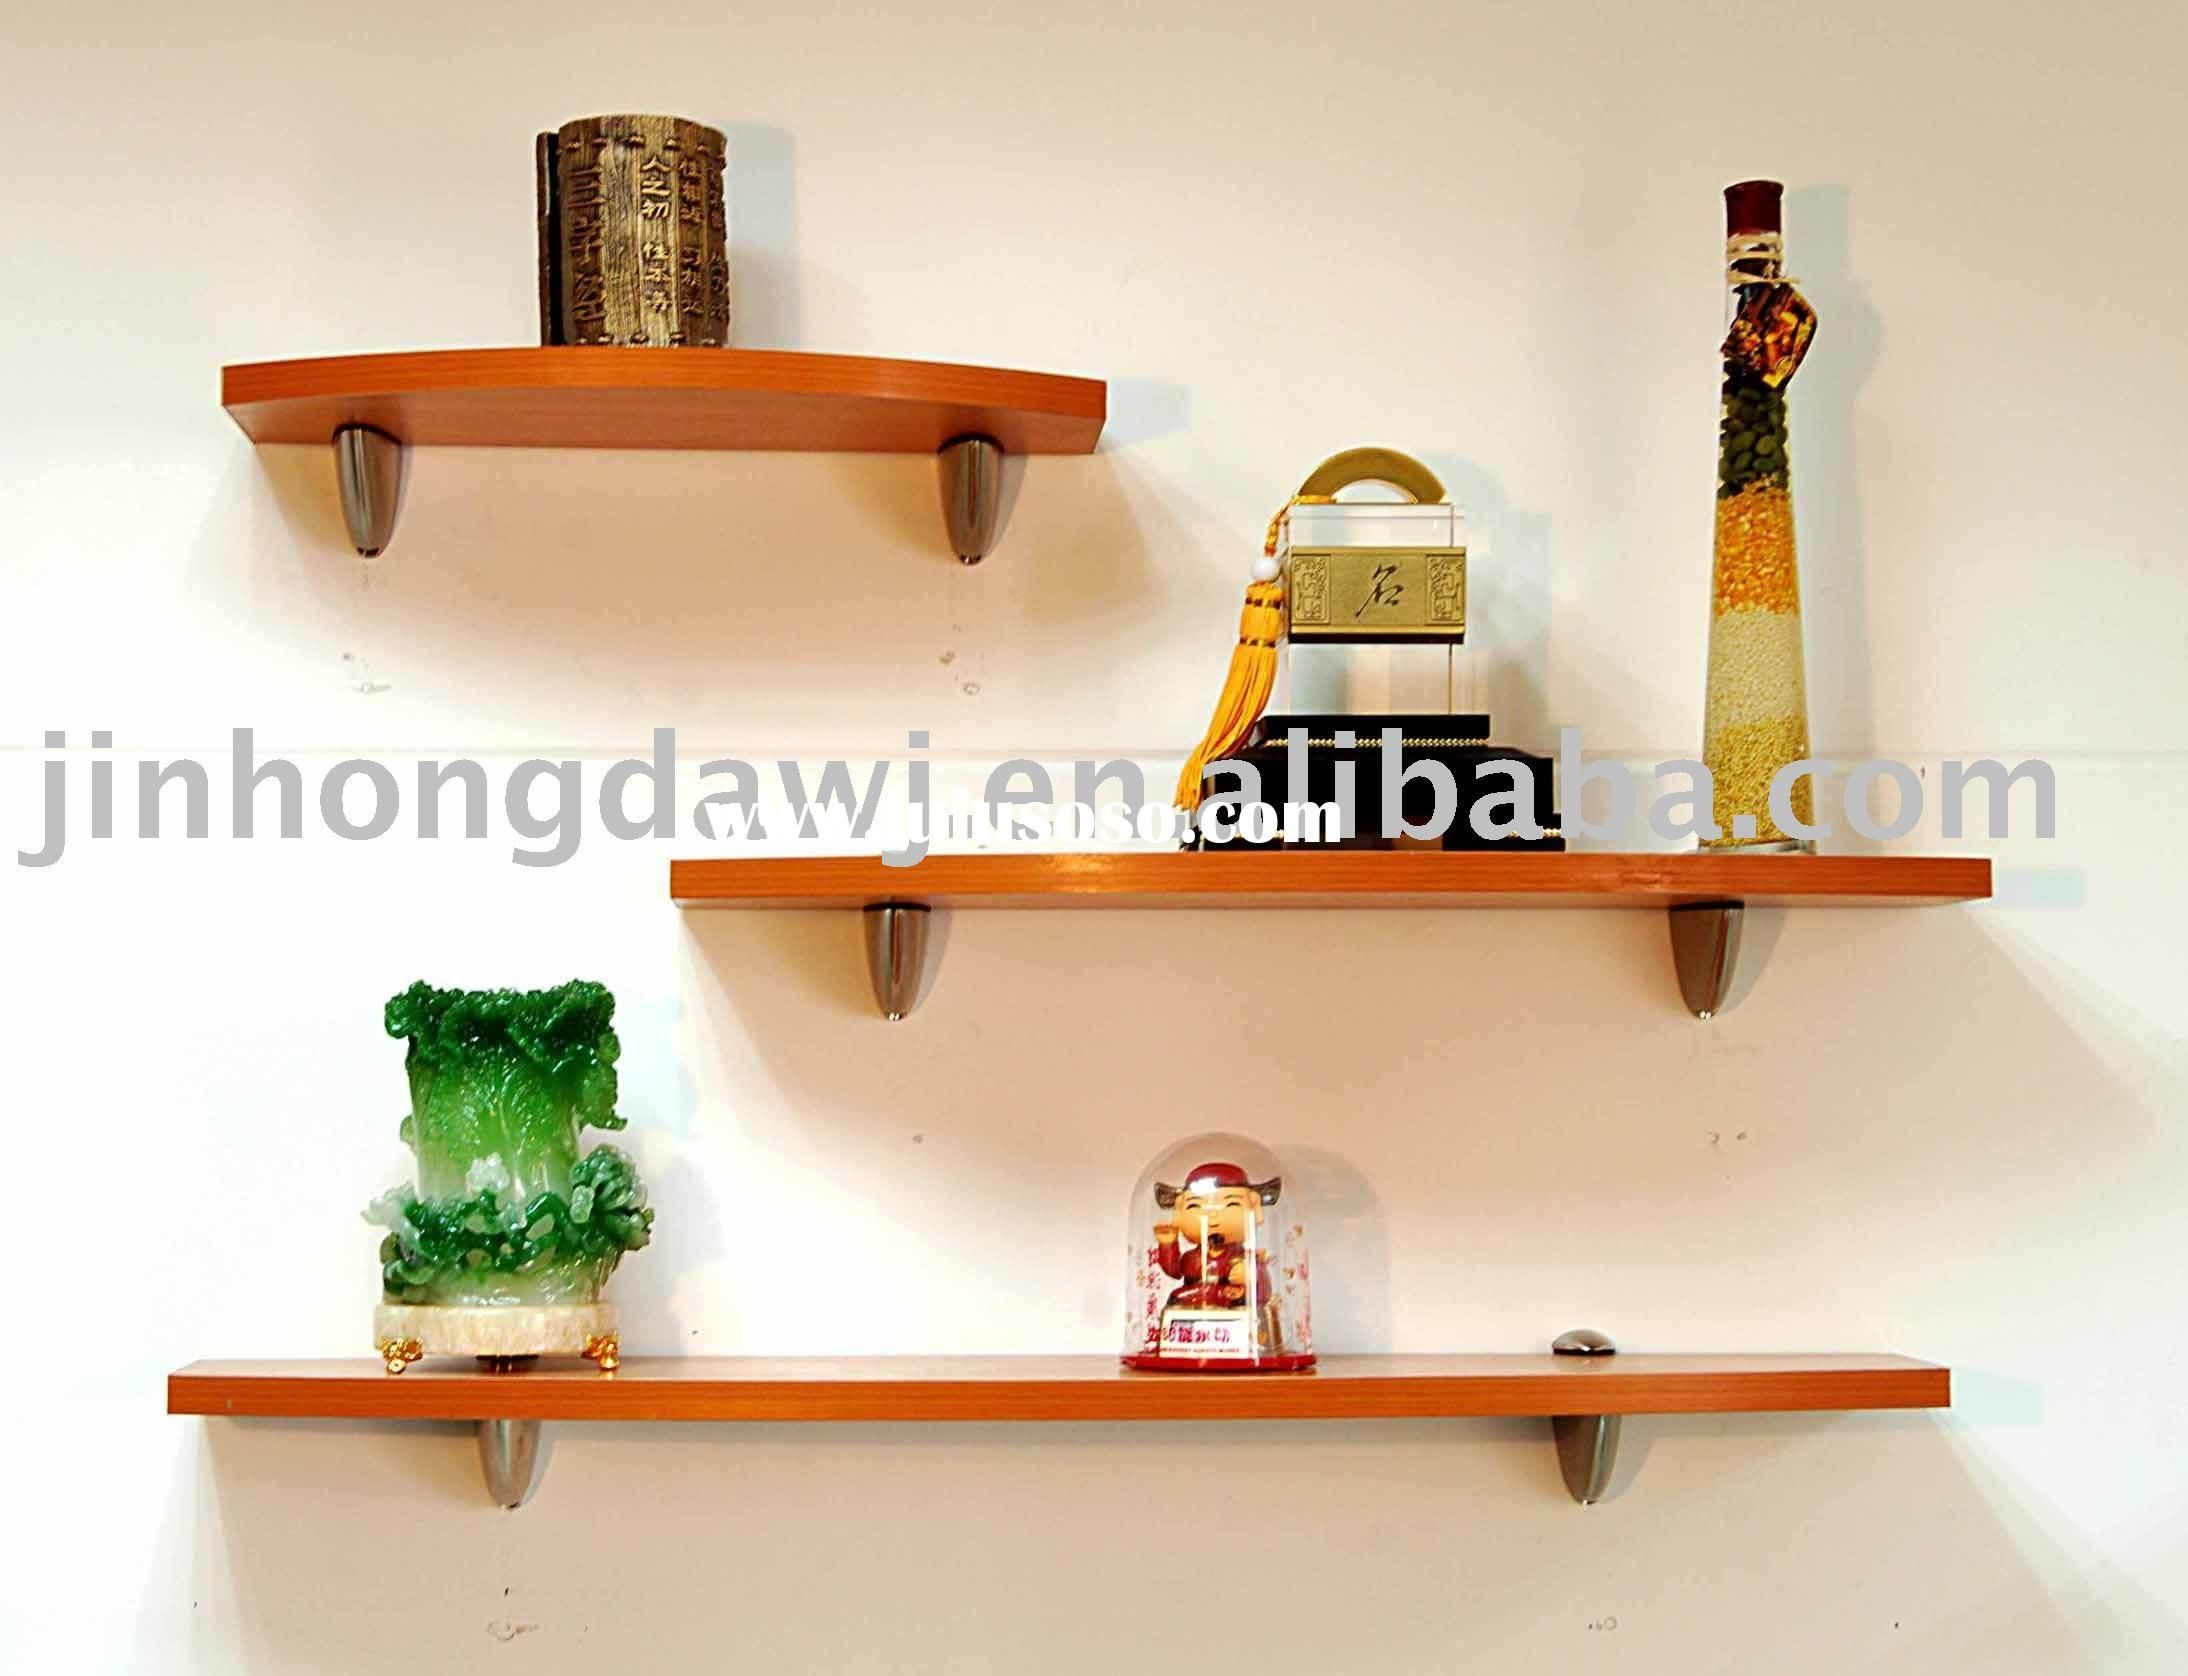 Wall Shelf Decor diy string shelving - google search | spice rack | pinterest | diy